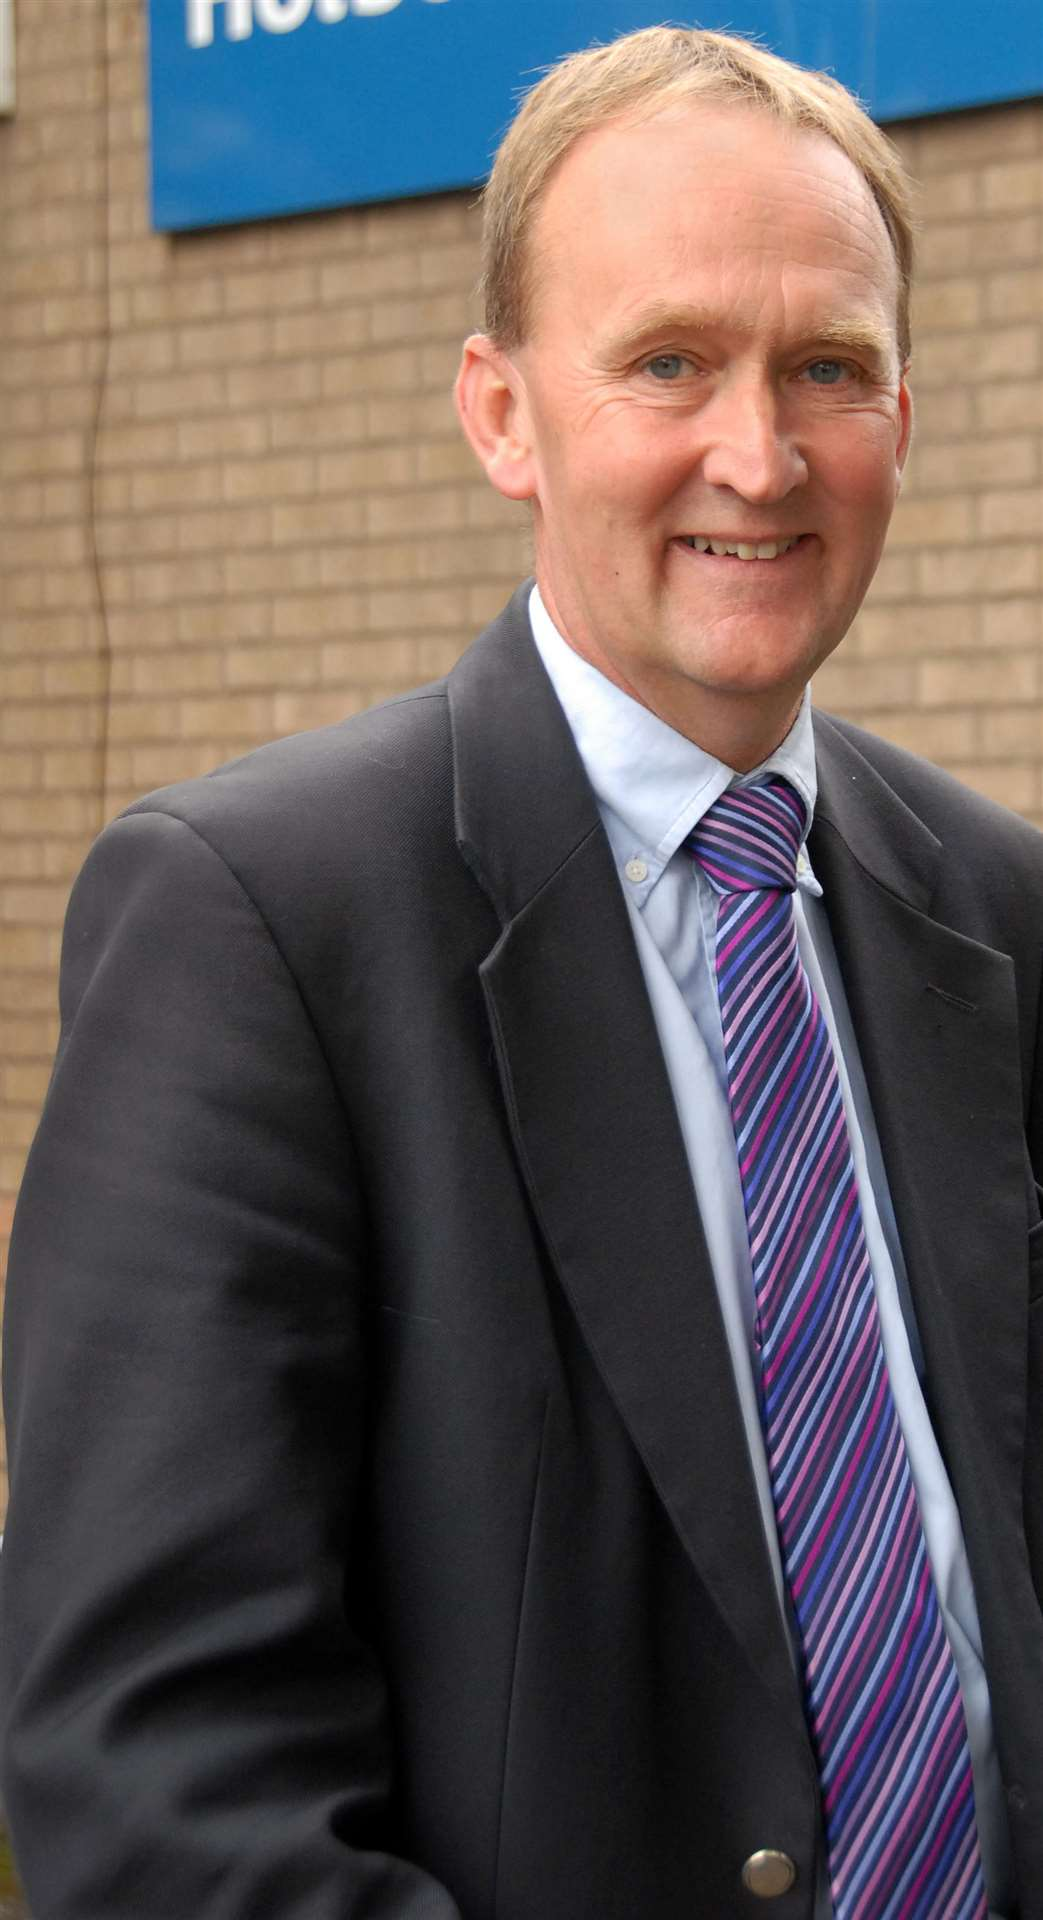 Coun Nick Worth, Lincolnshire County Council member for Holbeach. SG110913-222NG.